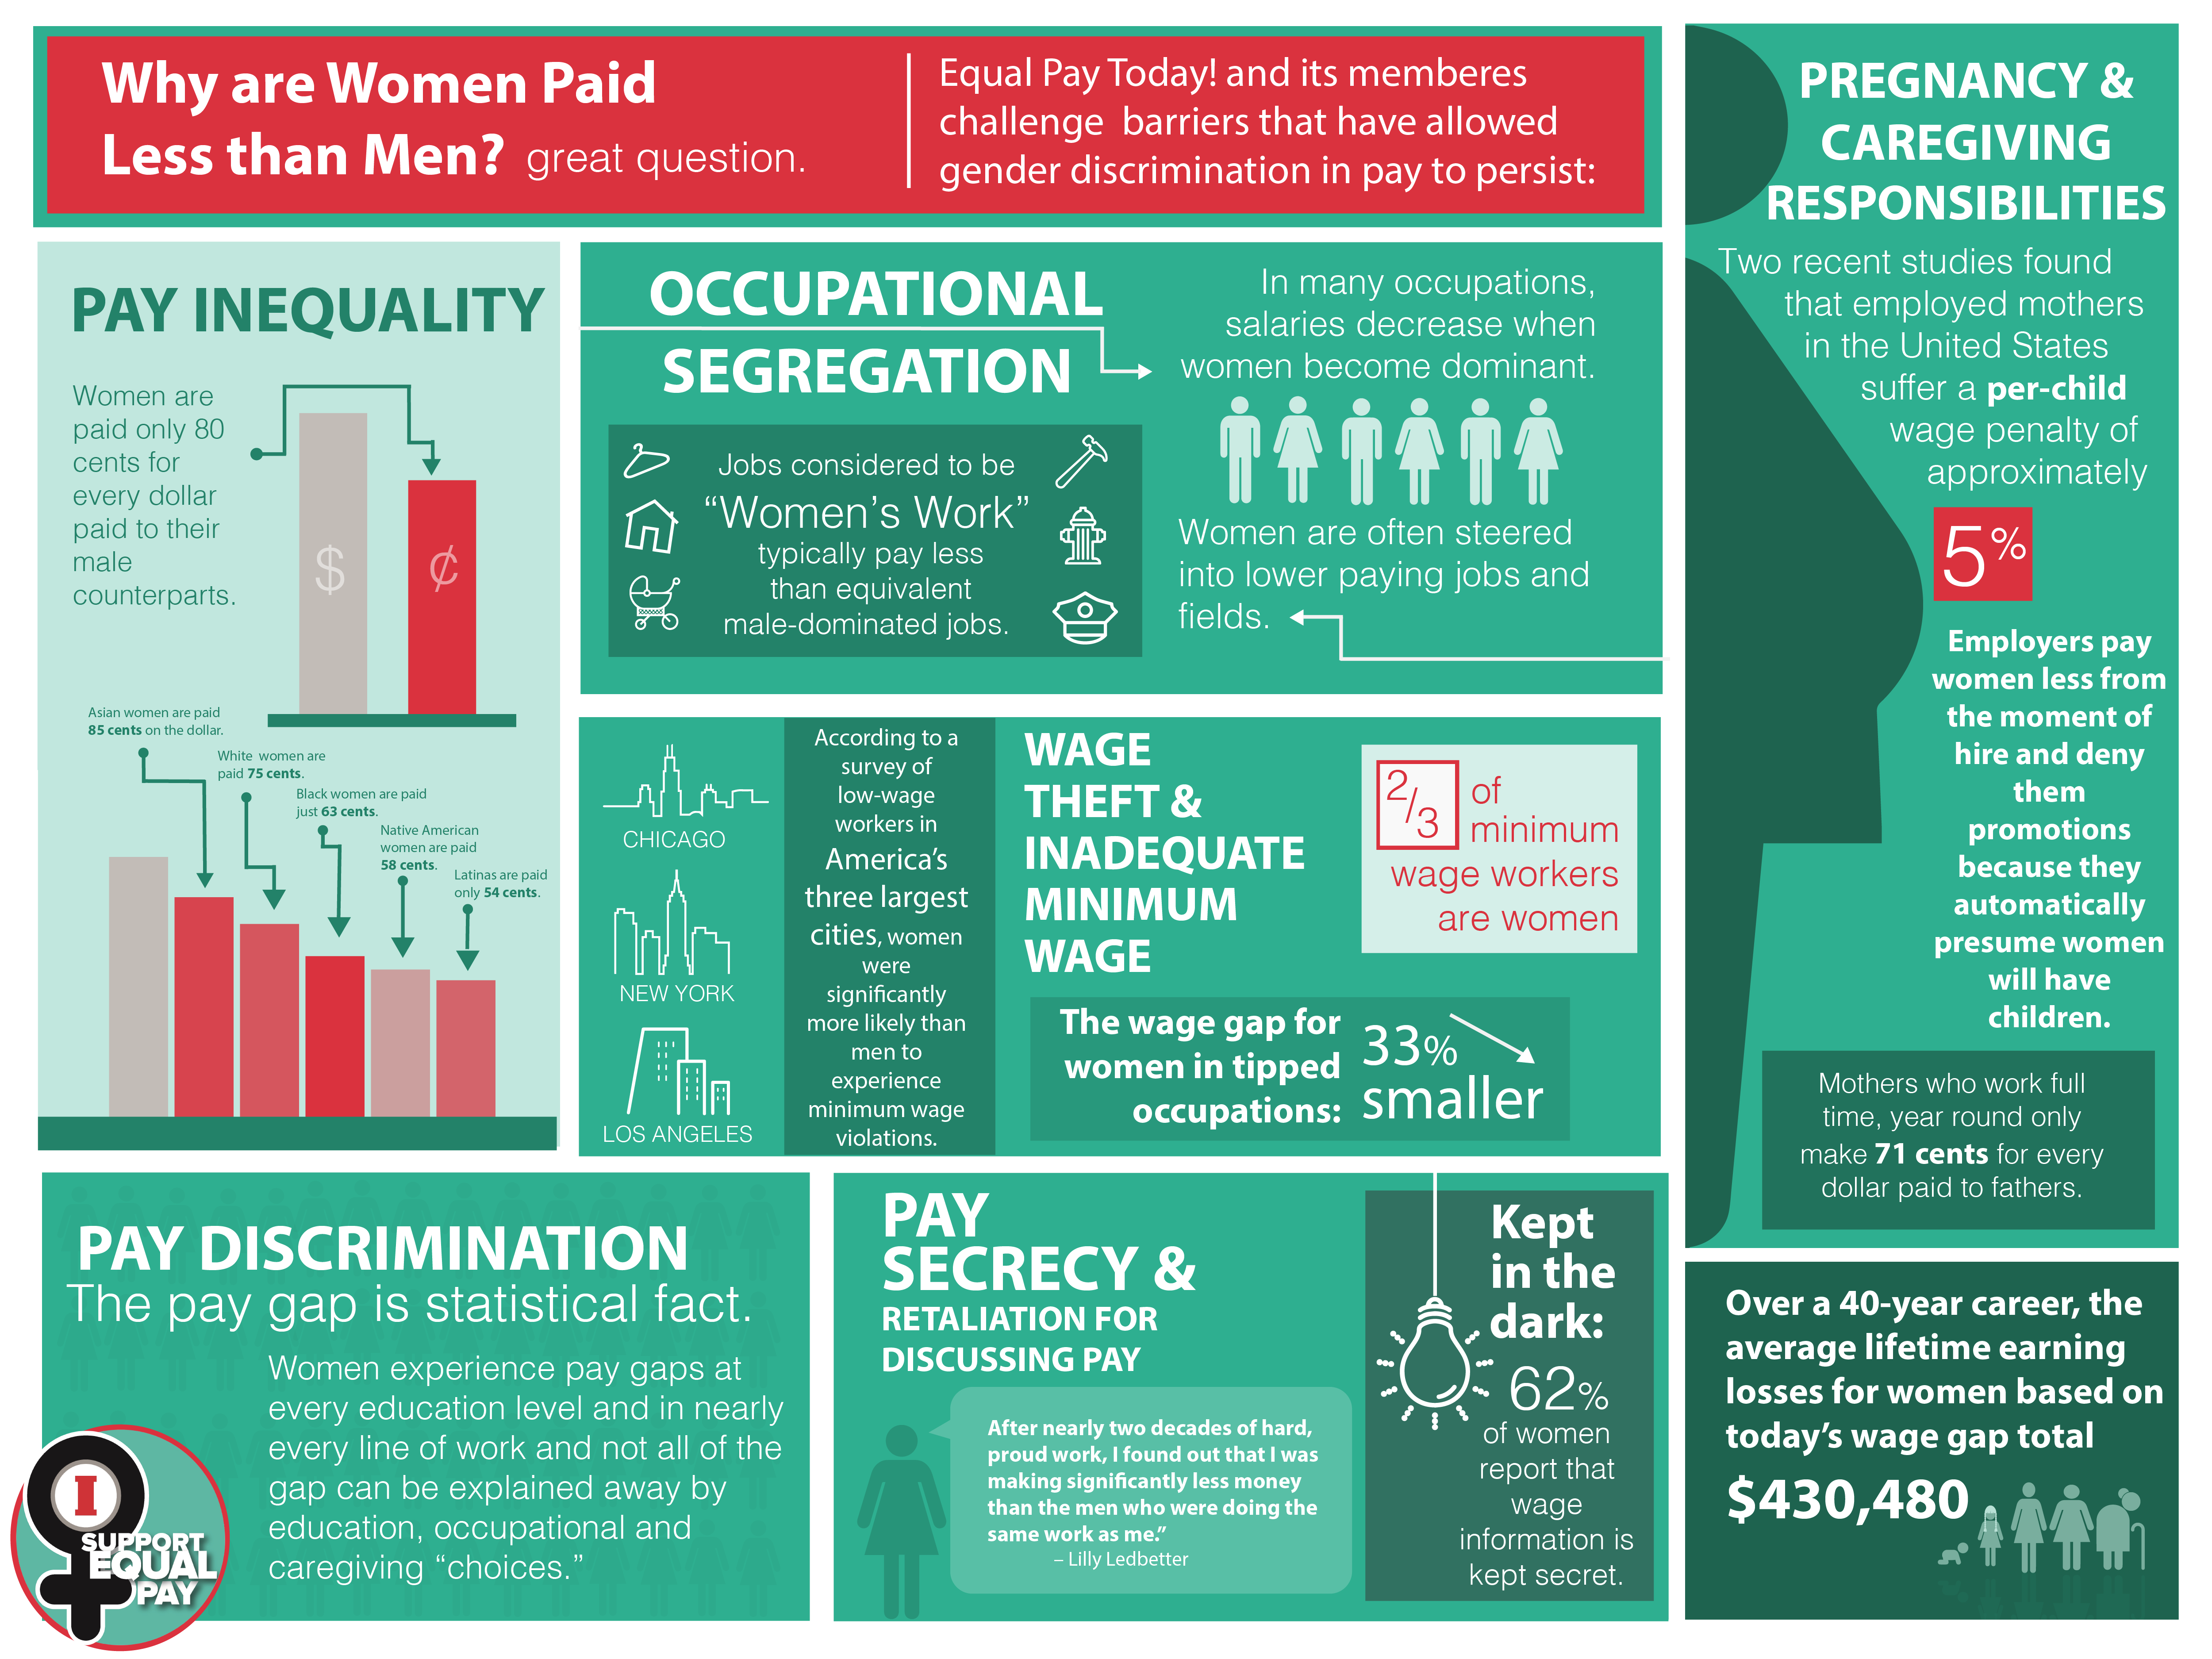 Equal ay Today infographic facts